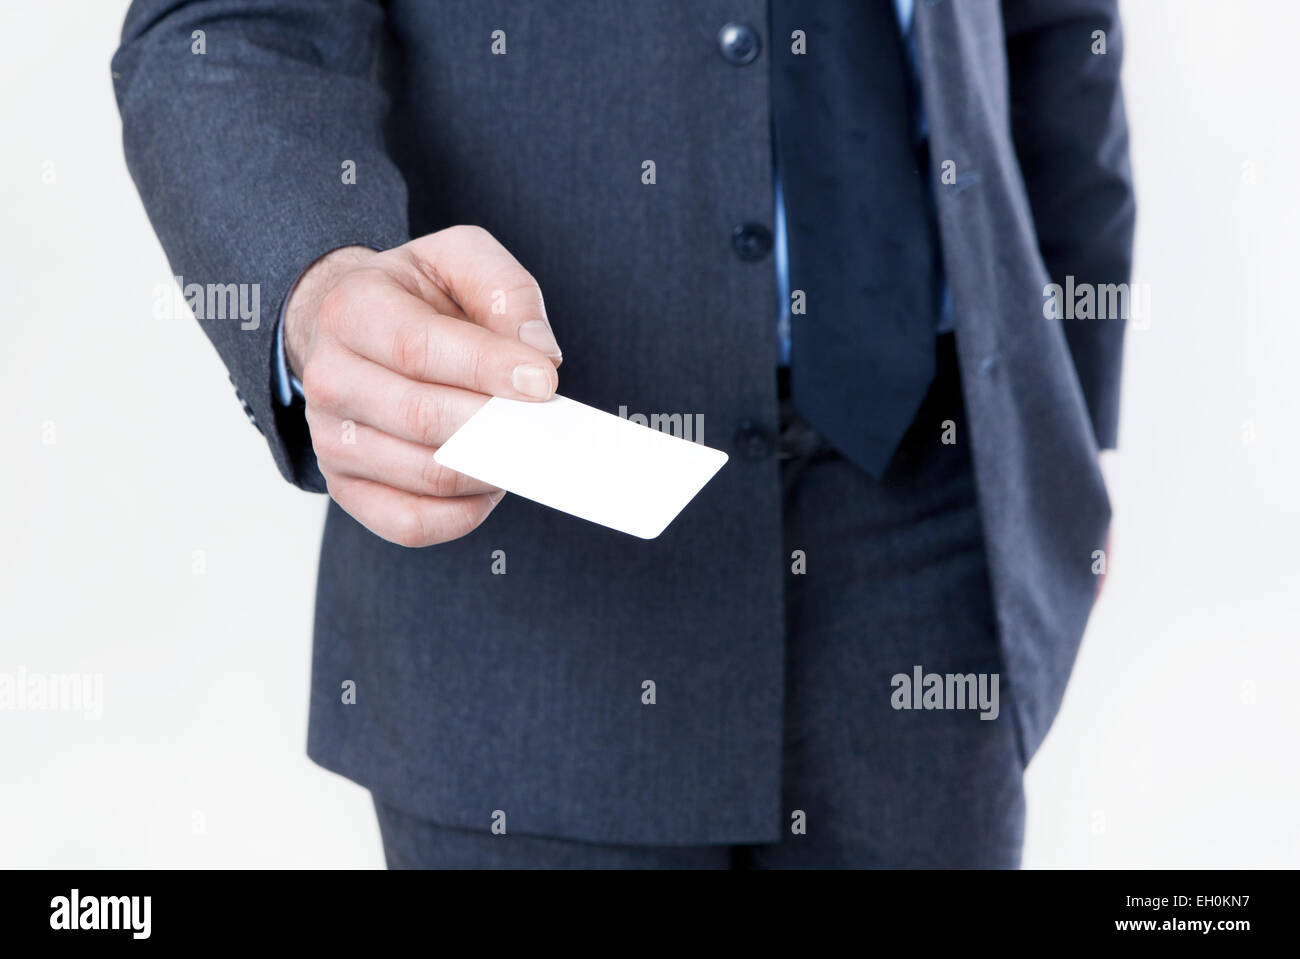 Man in suit with tie holds a white business card in hand no face man in suit with tie holds a white business card in hand no face magicingreecefo Choice Image